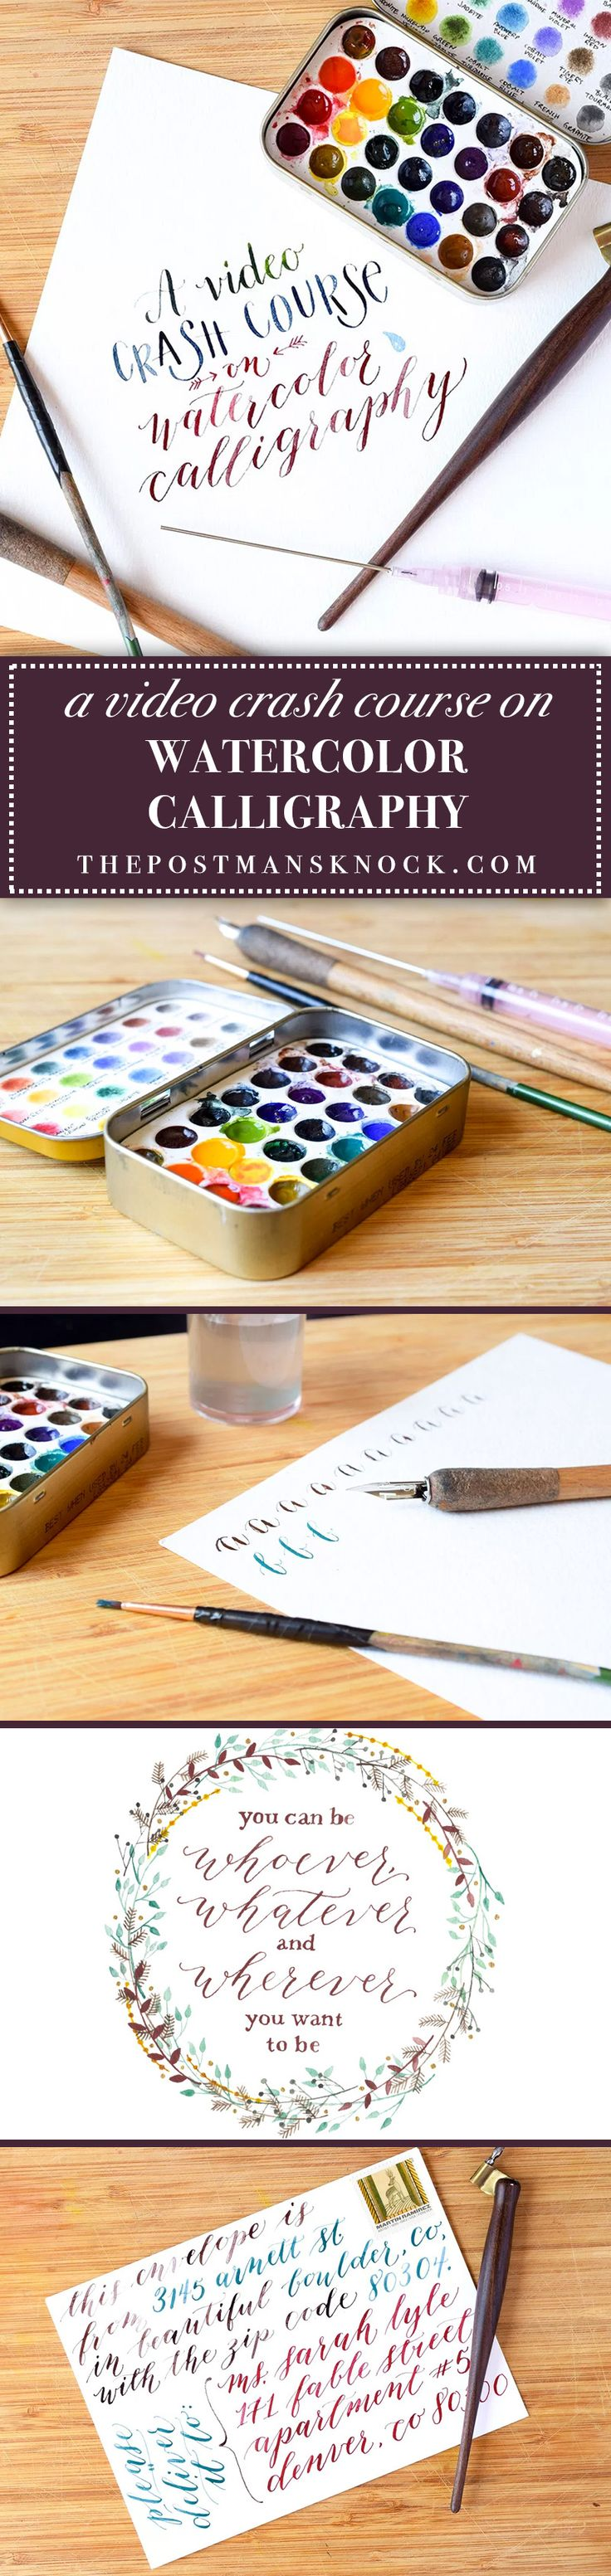 "After reading this blog post (and watching the ~10 minute video ""crash course""), you'll be well on your way to creating watercolor calligraphy with a dip pen!"